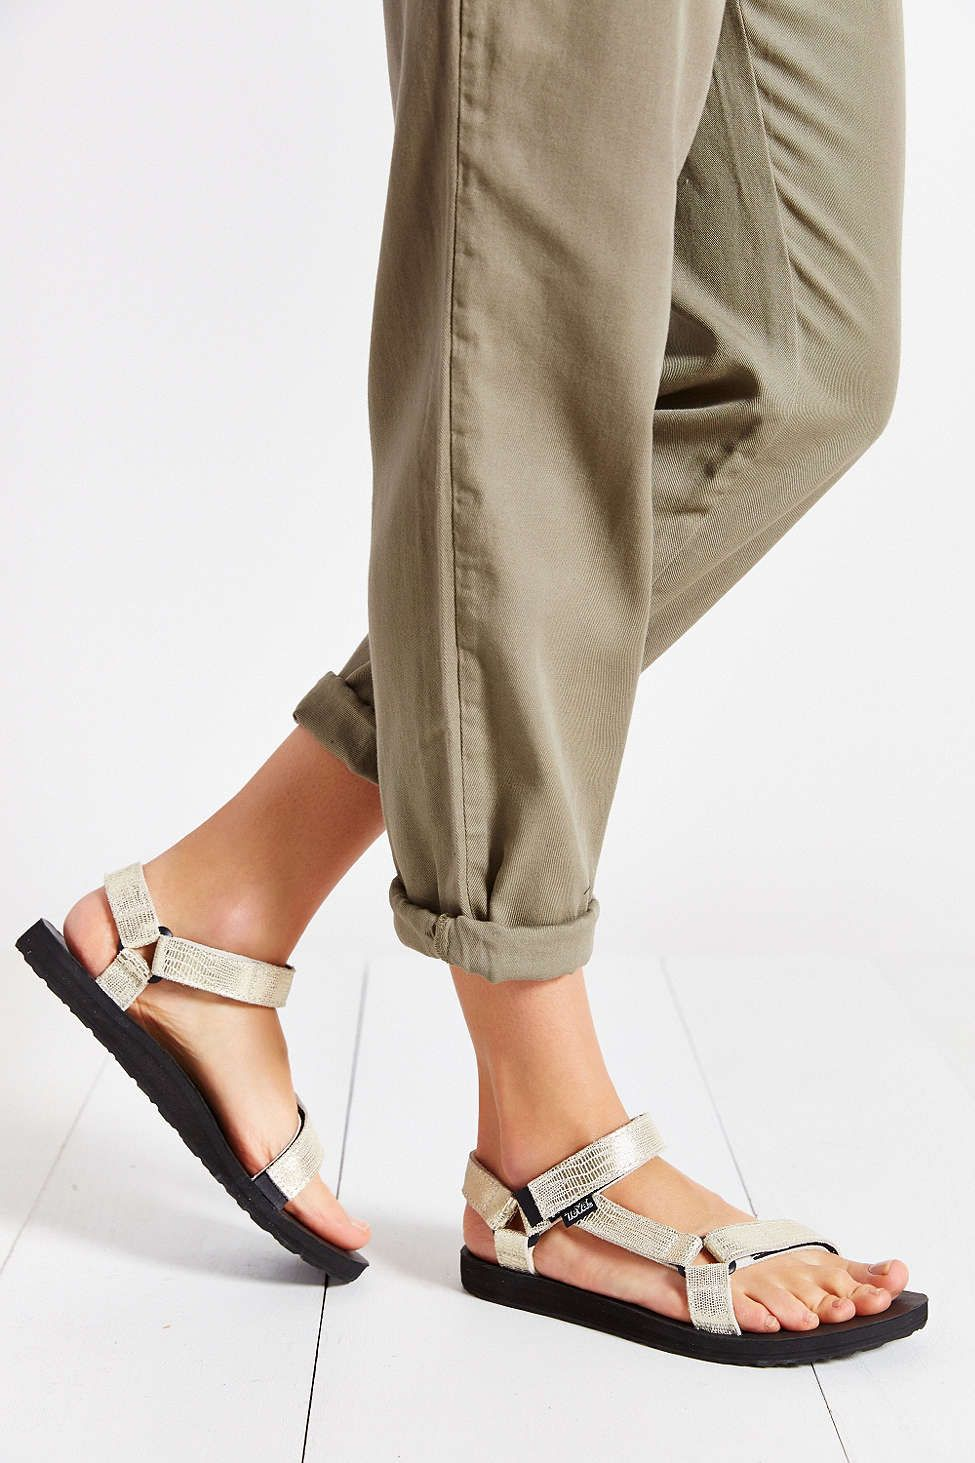 Teva Original Leather Metallic Sandal - Urban Outfitters